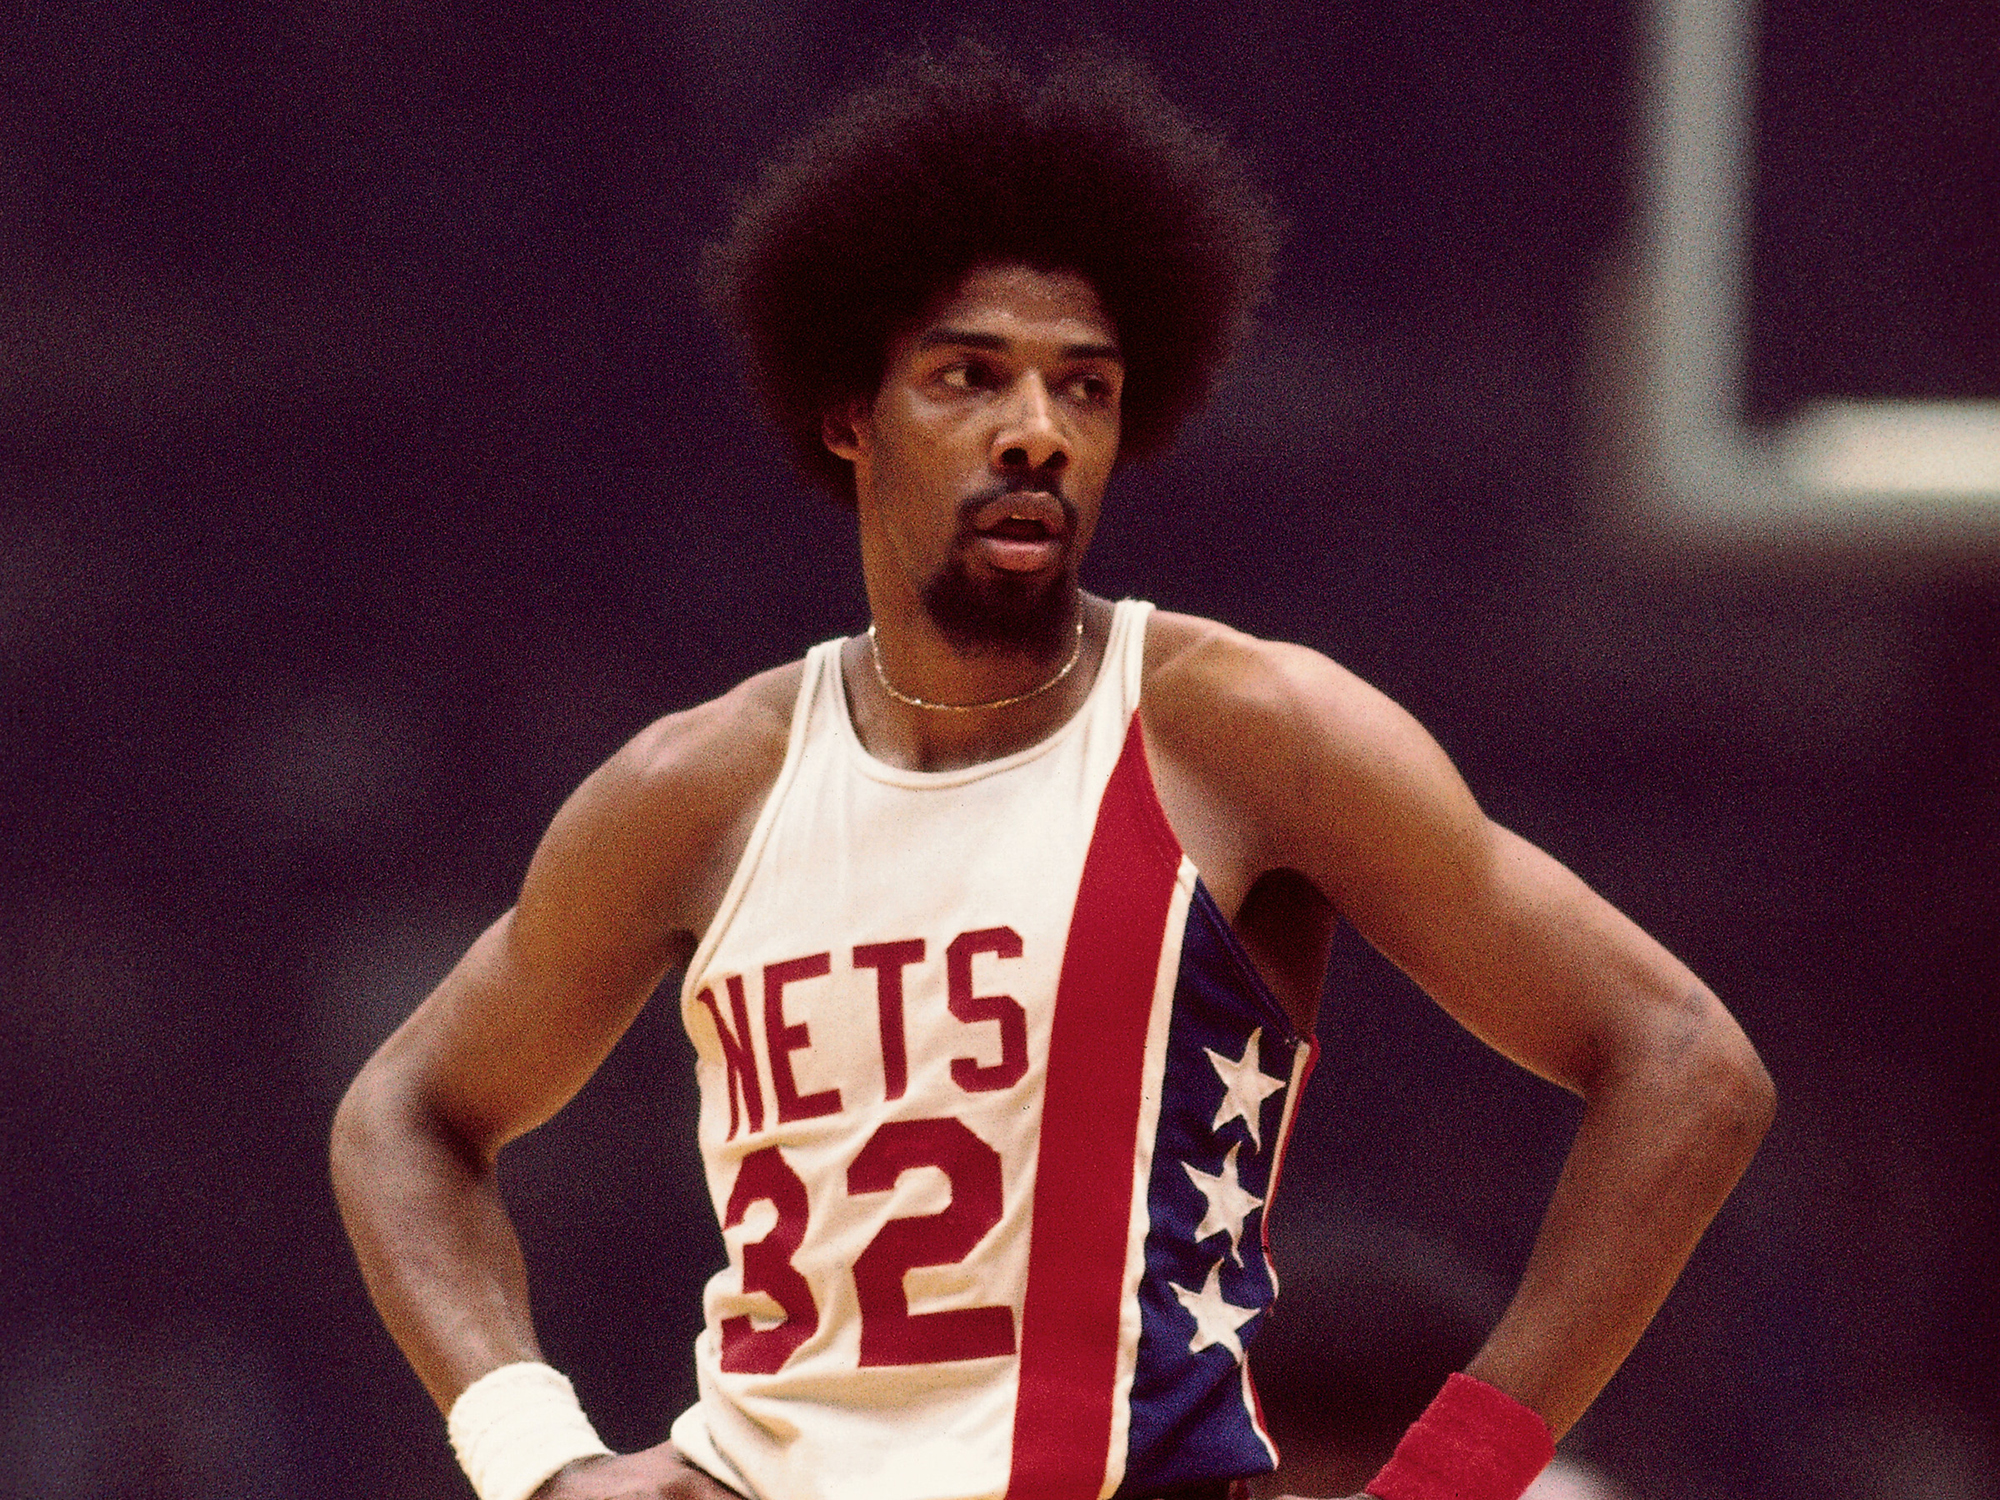 New Jersey Nets: Julius Erving